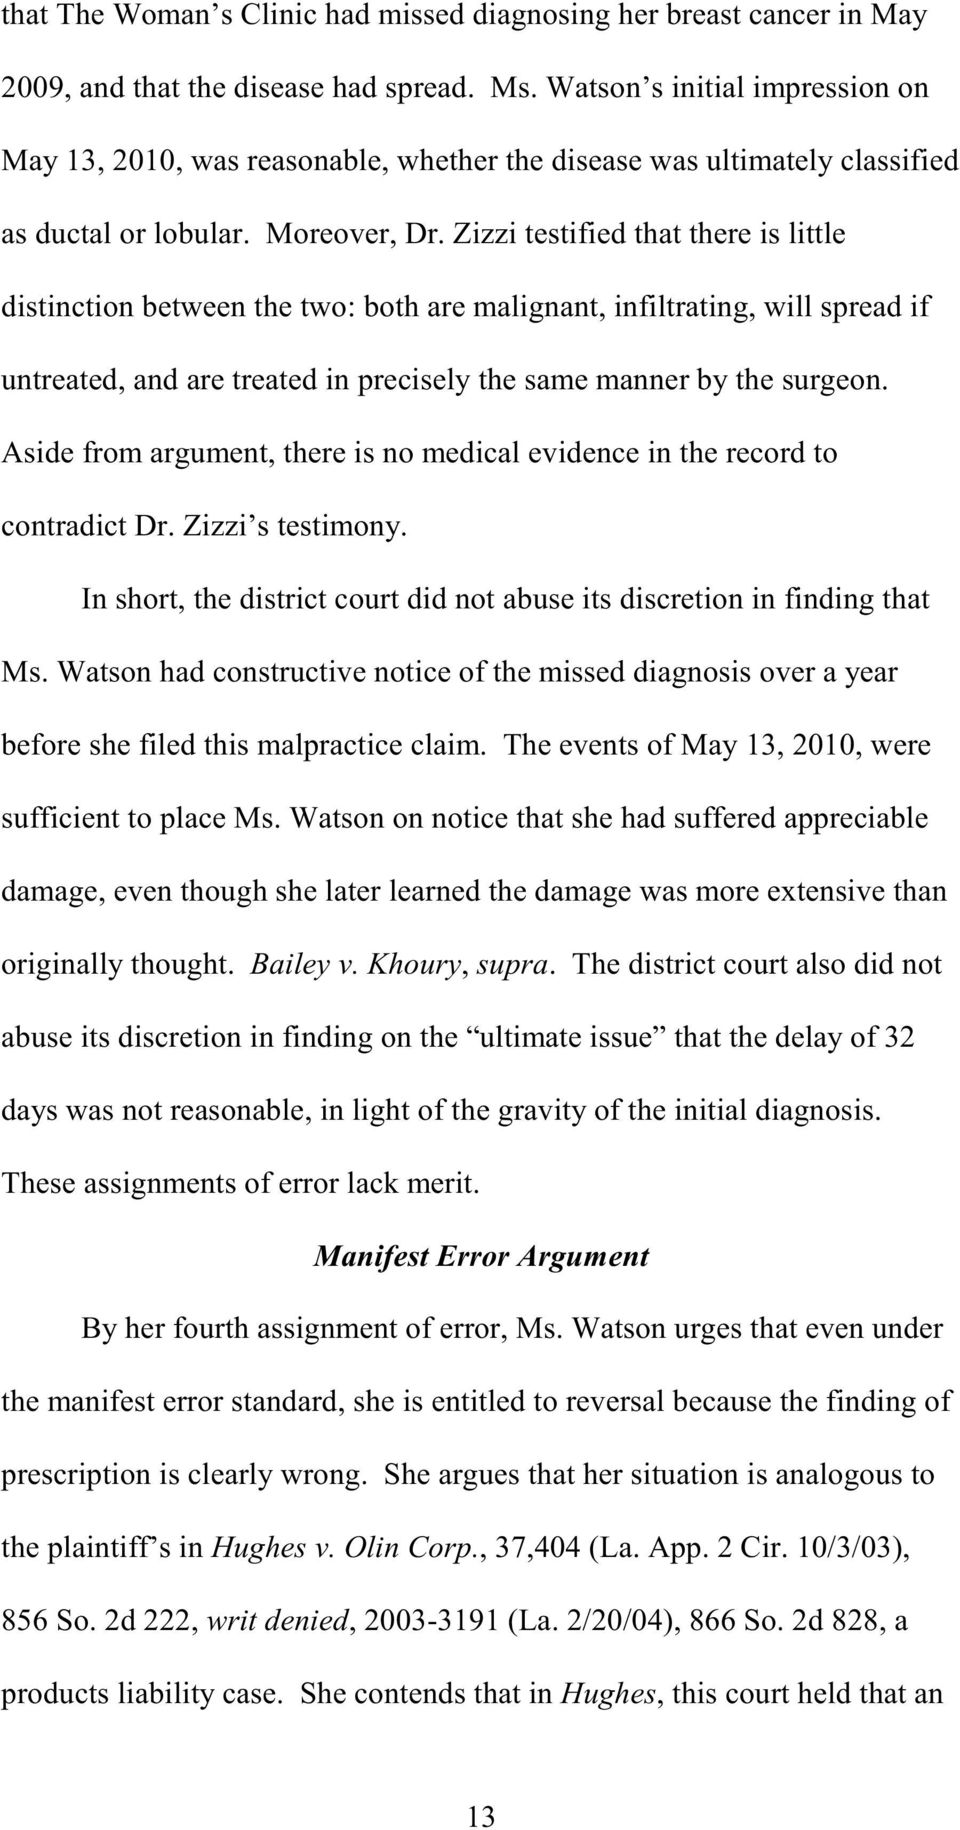 Zizzi testified that there is little distinction between the two: both are malignant, infiltrating, will spread if untreated, and are treated in precisely the same manner by the surgeon.